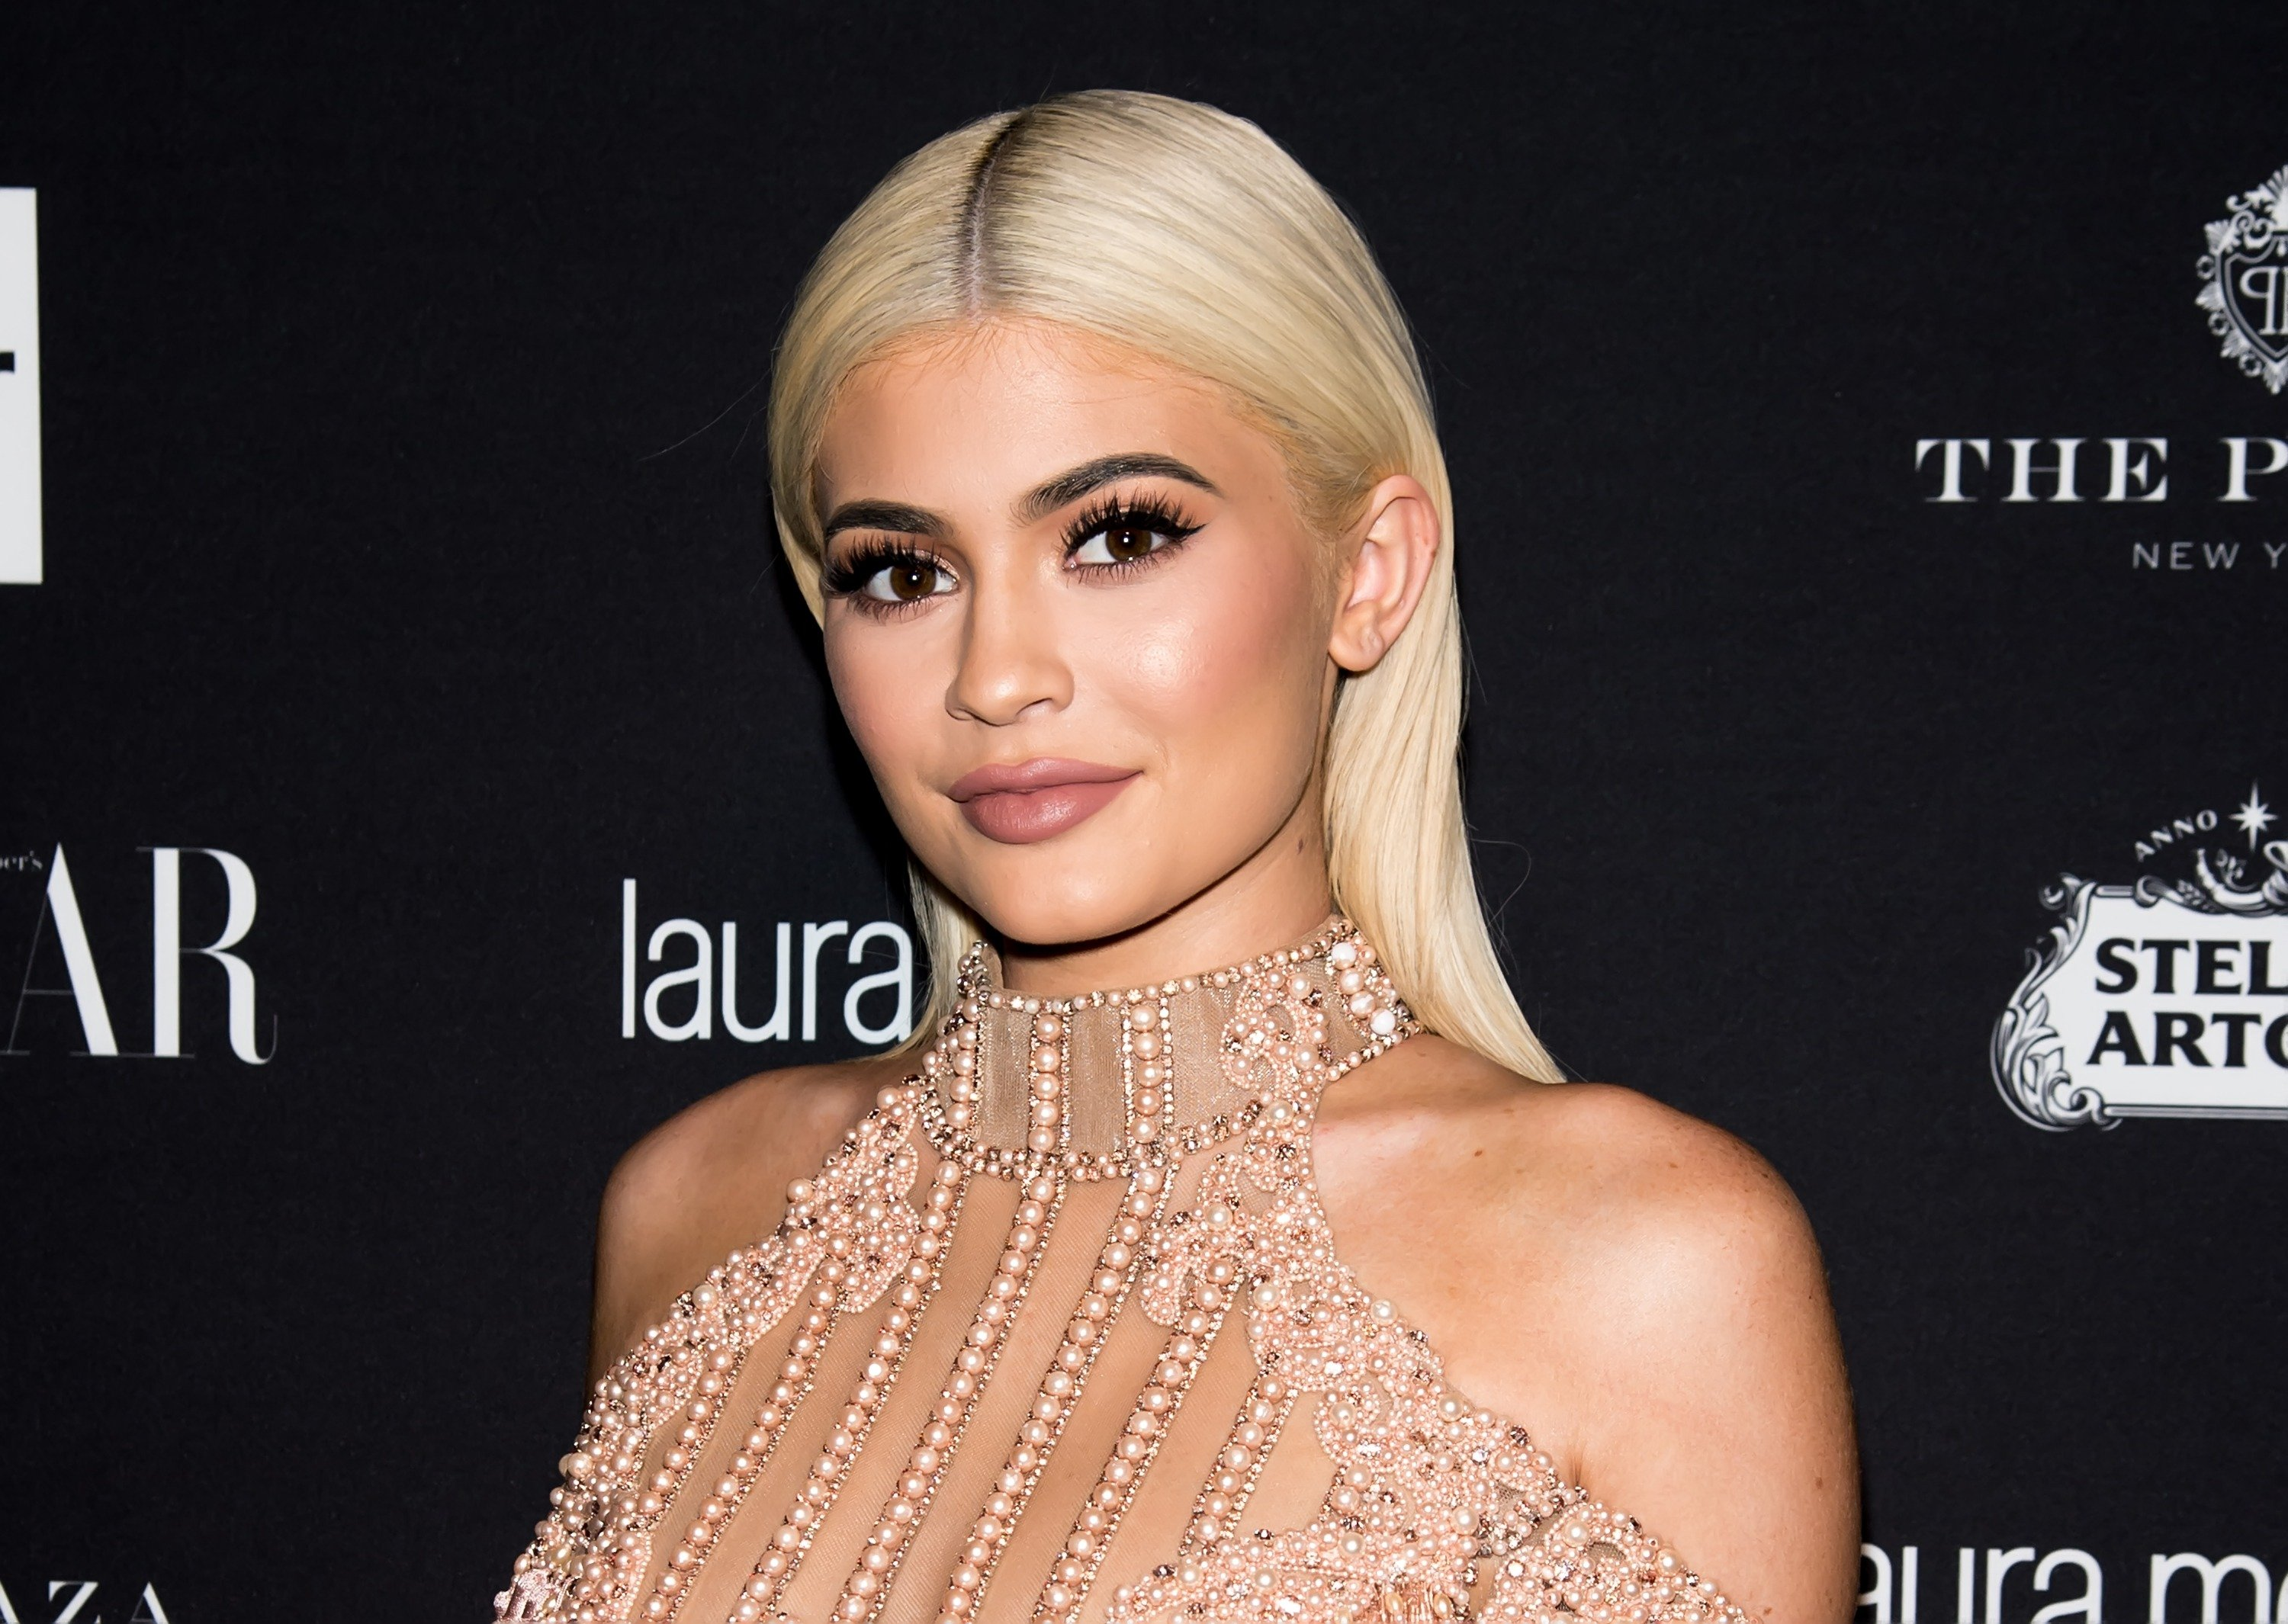 Kylie Jenner attends Harper's Bazaar Celebrates 'ICONS By Carine Roitfeld' at The Plaza Hotel on September 9, 2016 in New York City   Photo: Getty Images